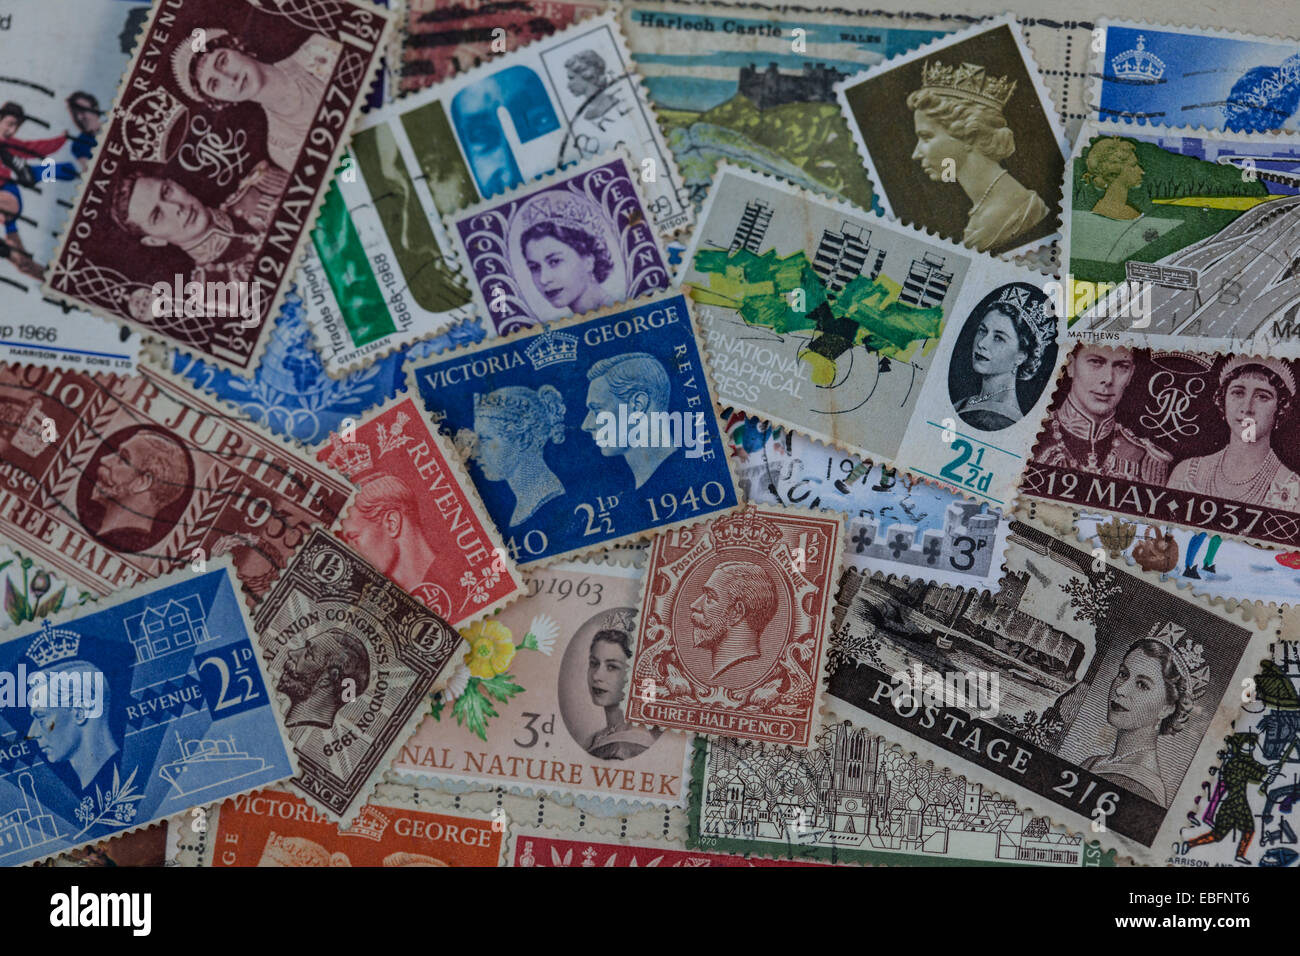 Old postage stamps - Stock Image